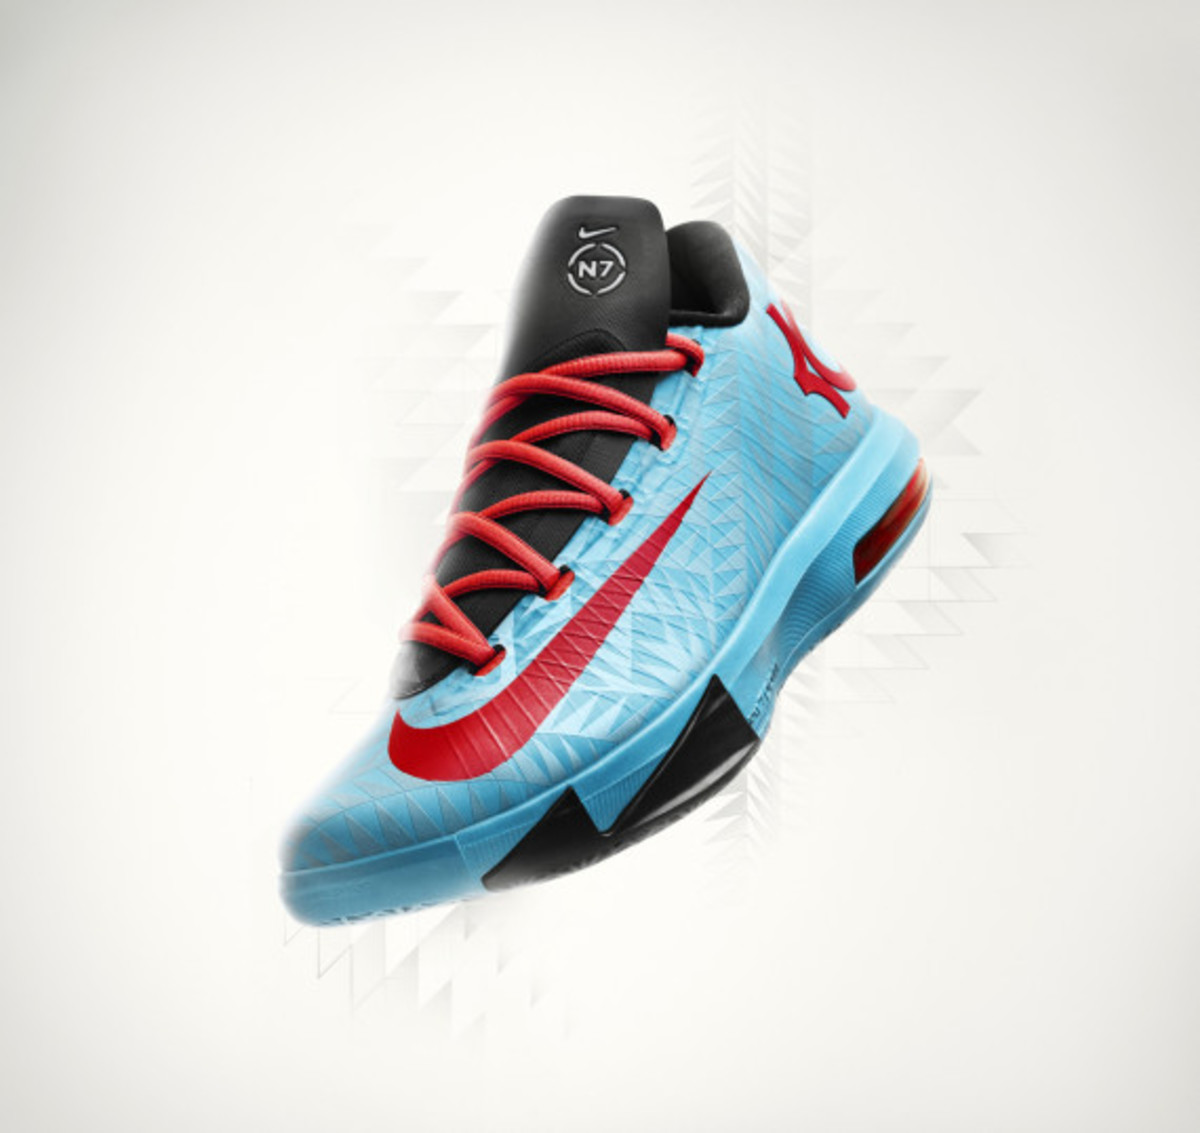 nike-kd-6-n7-officially-unveiled-08